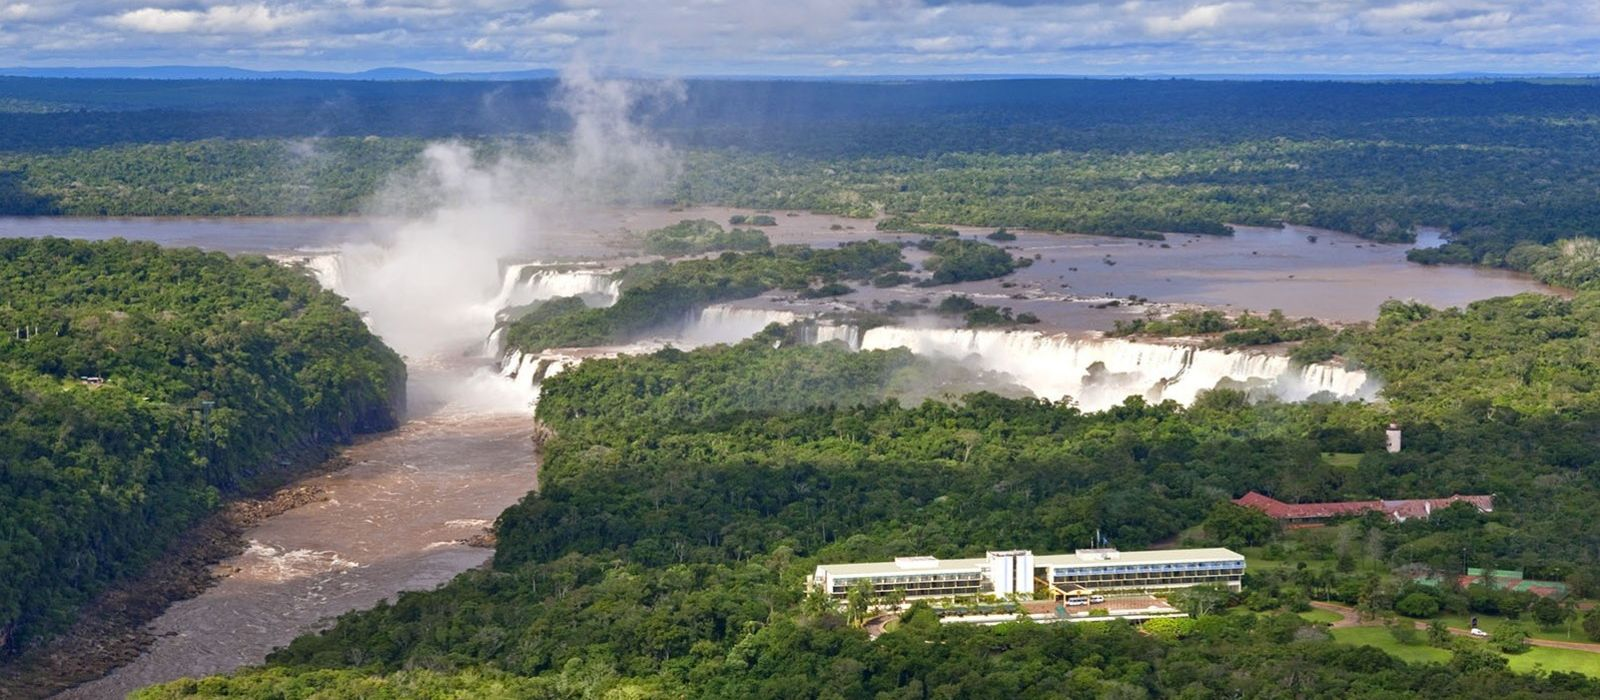 Argentina: Waterfalls, Marine Mammals and Gauchos Tour Trip 2